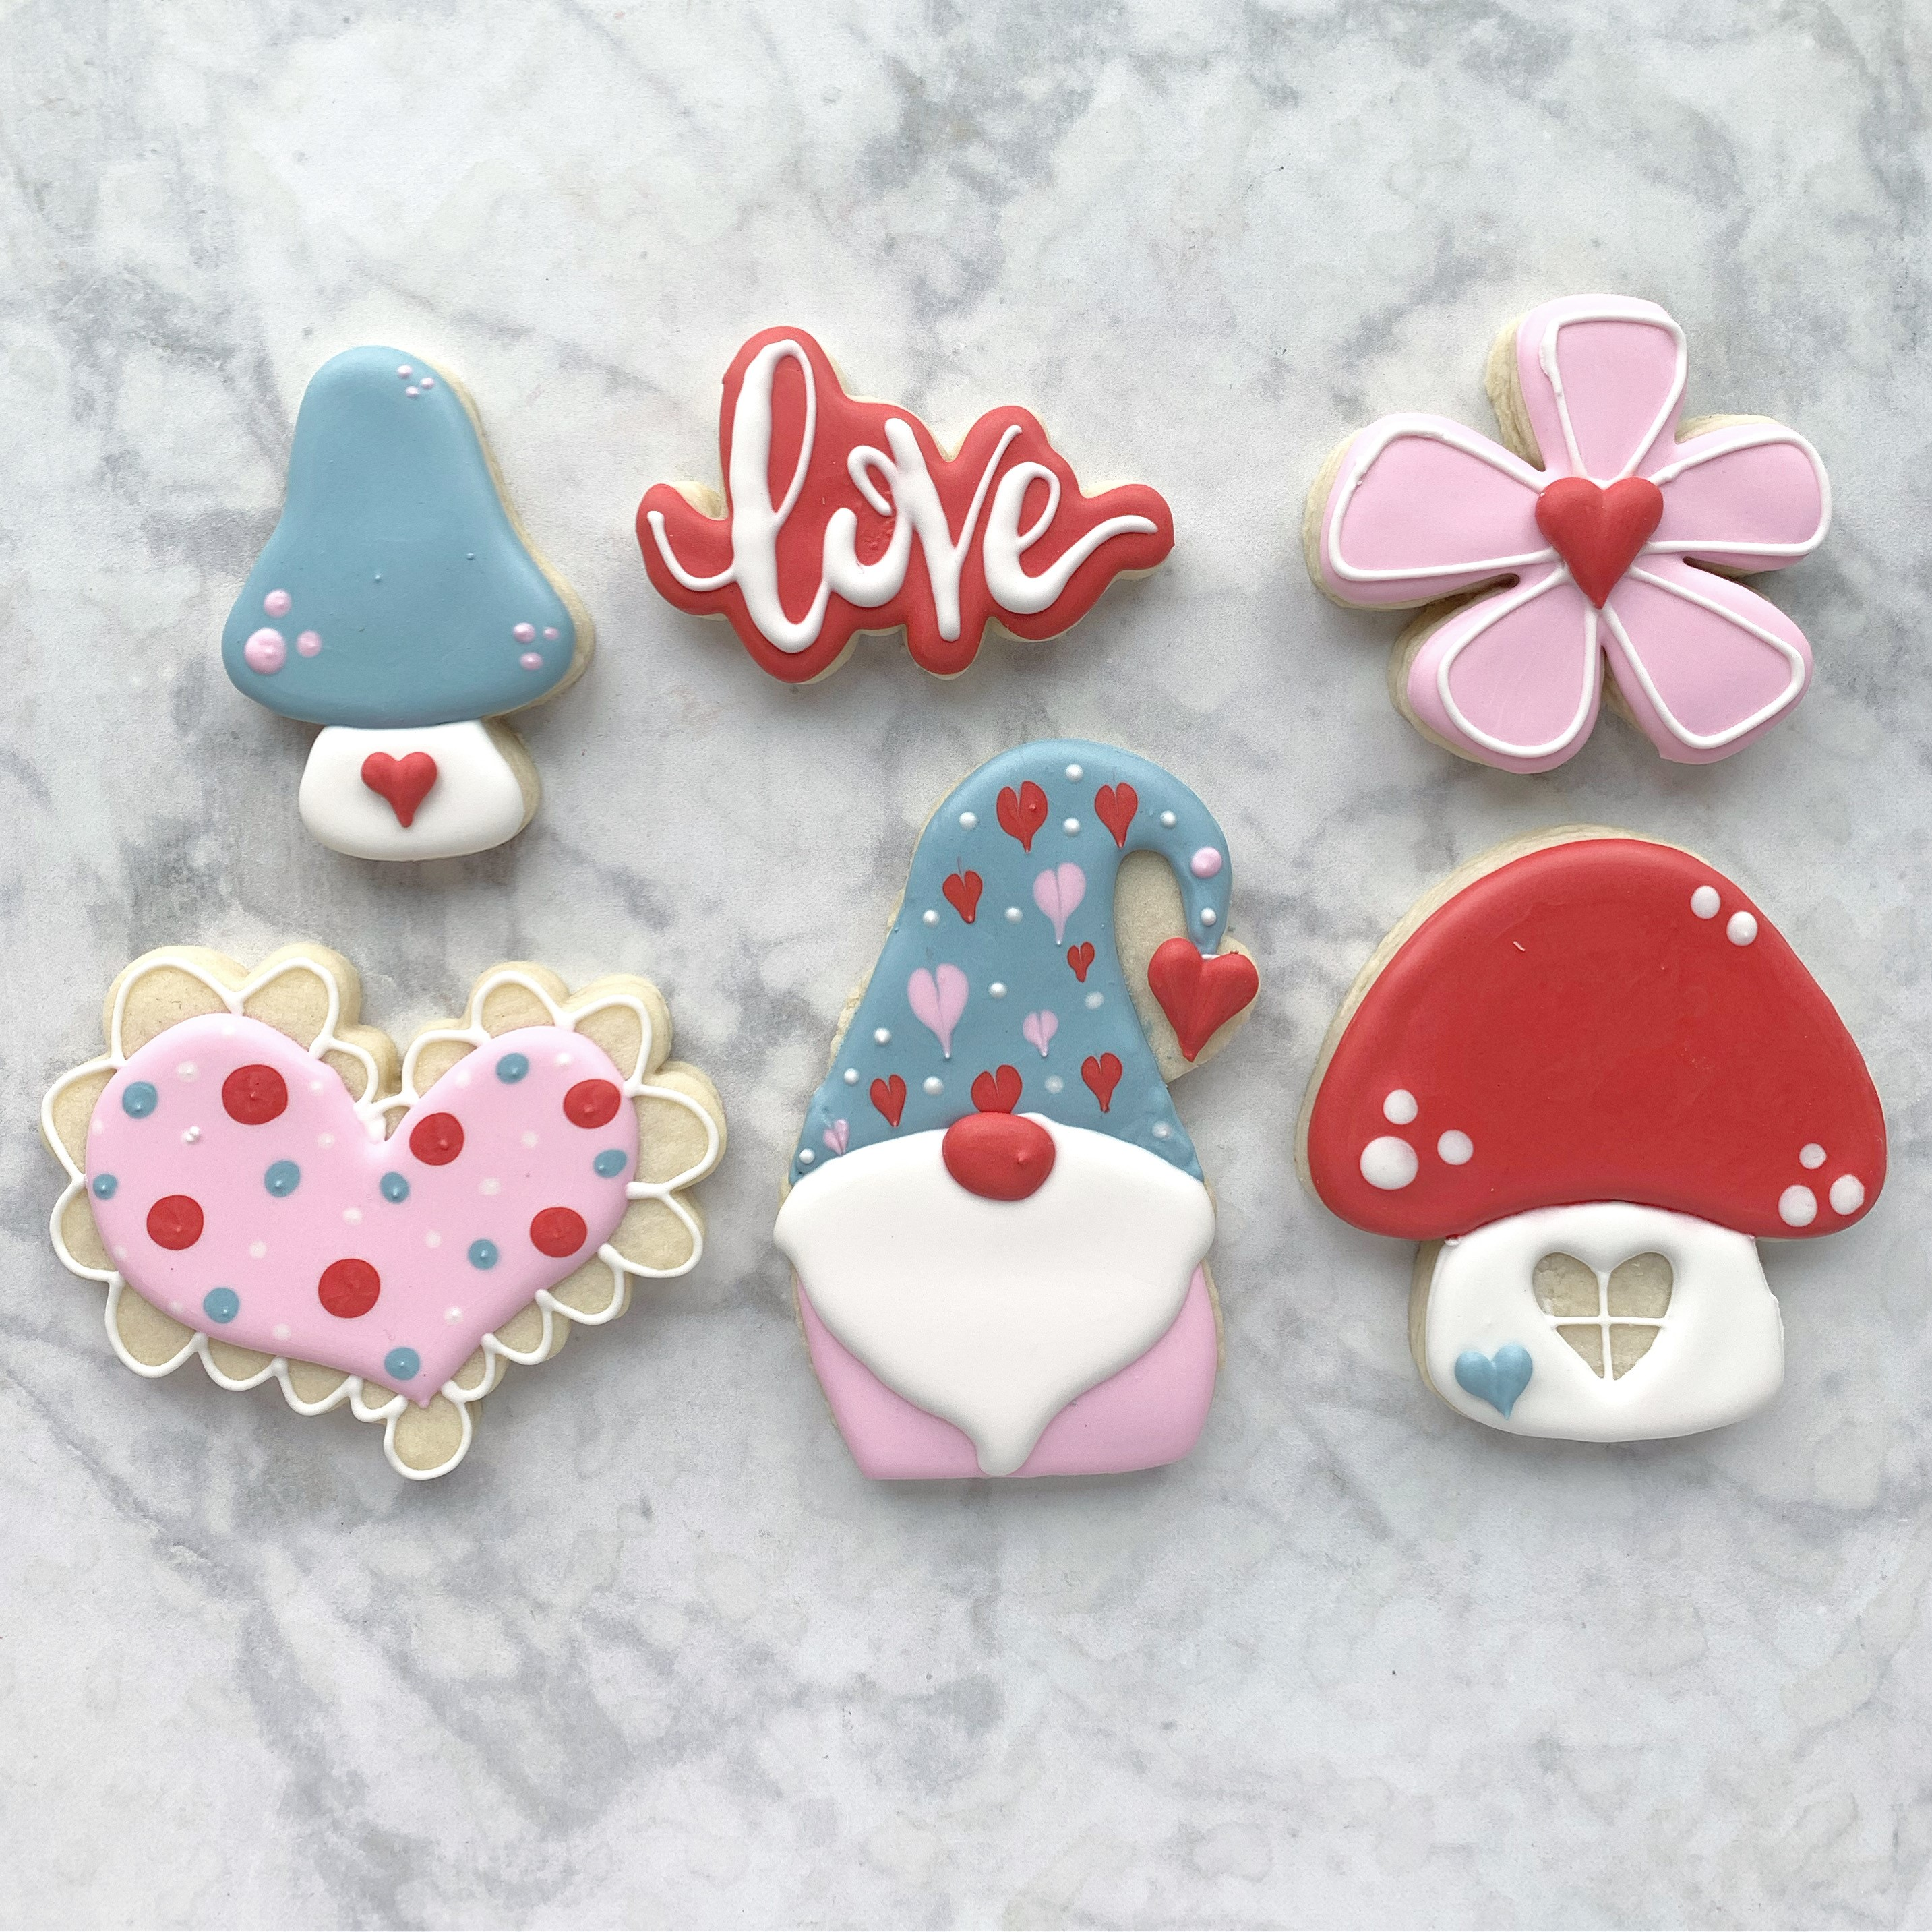 February 11th: Valentine's Cookie Decorating Class with Marla's Cookies